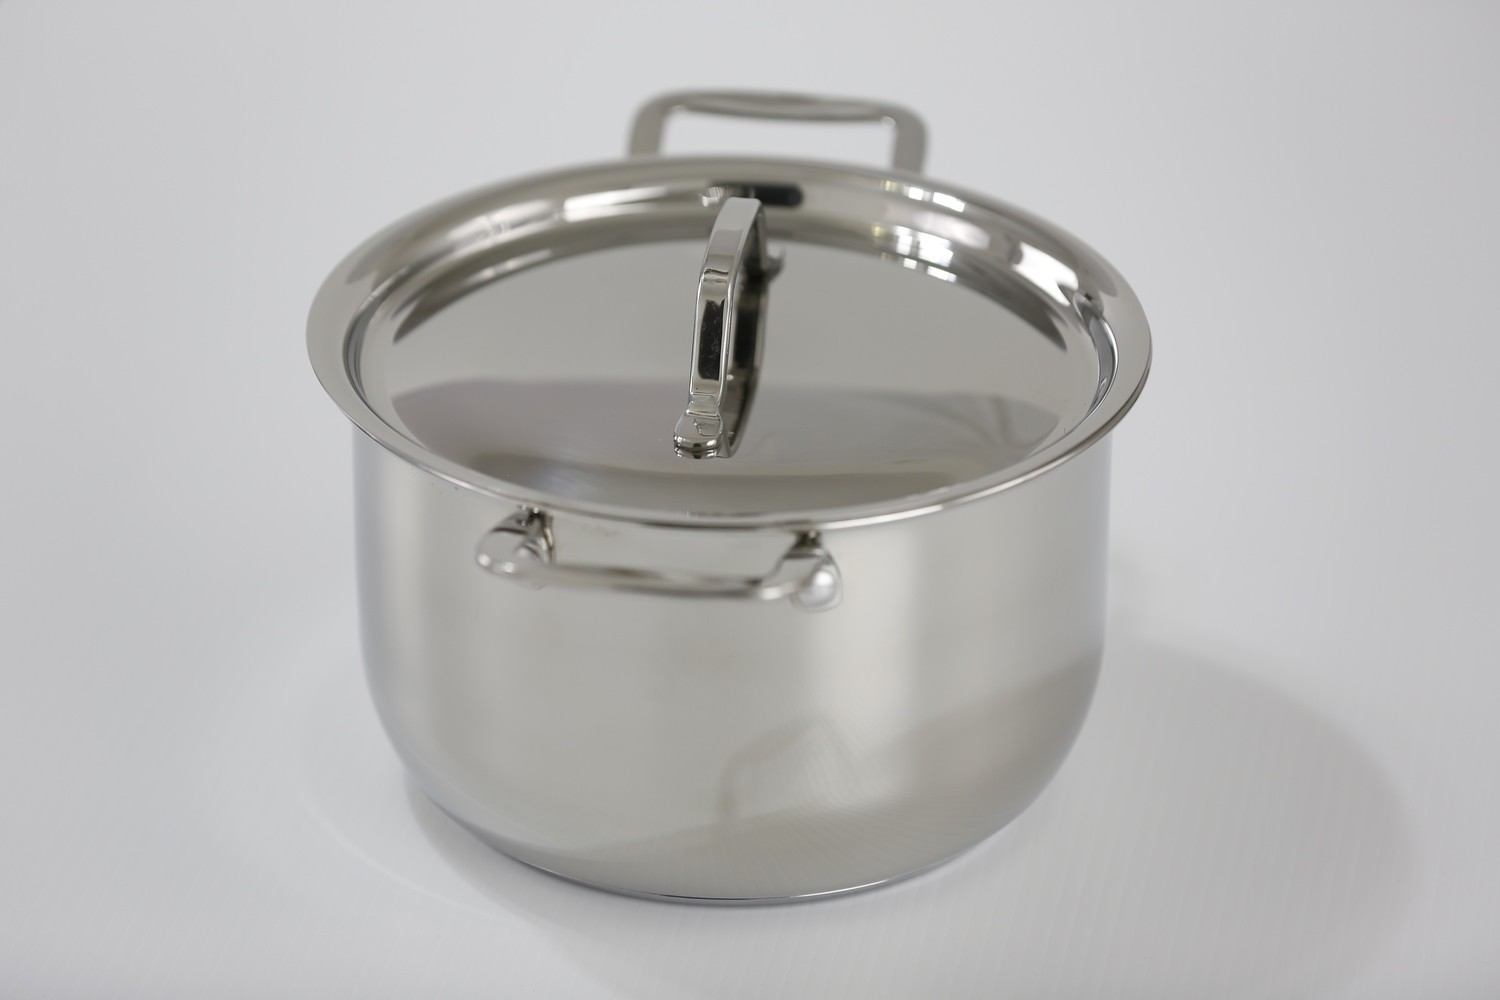 SS1-5.18 Qt. Stainless Steel Queen Sauce Pot with Cover